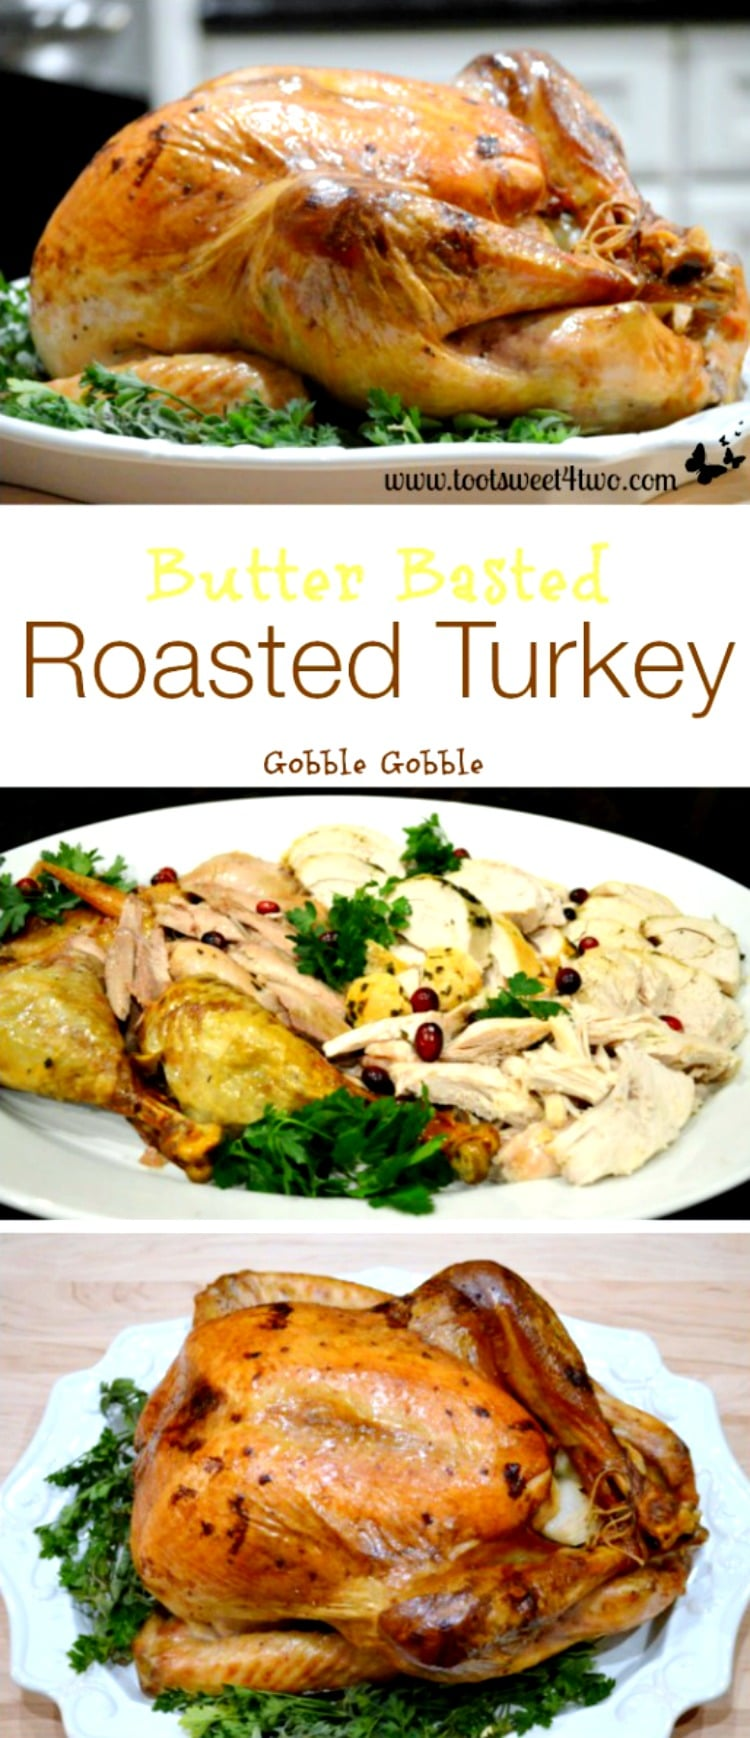 Thanksgiving Entree - Butter Basted Roasted Turkey